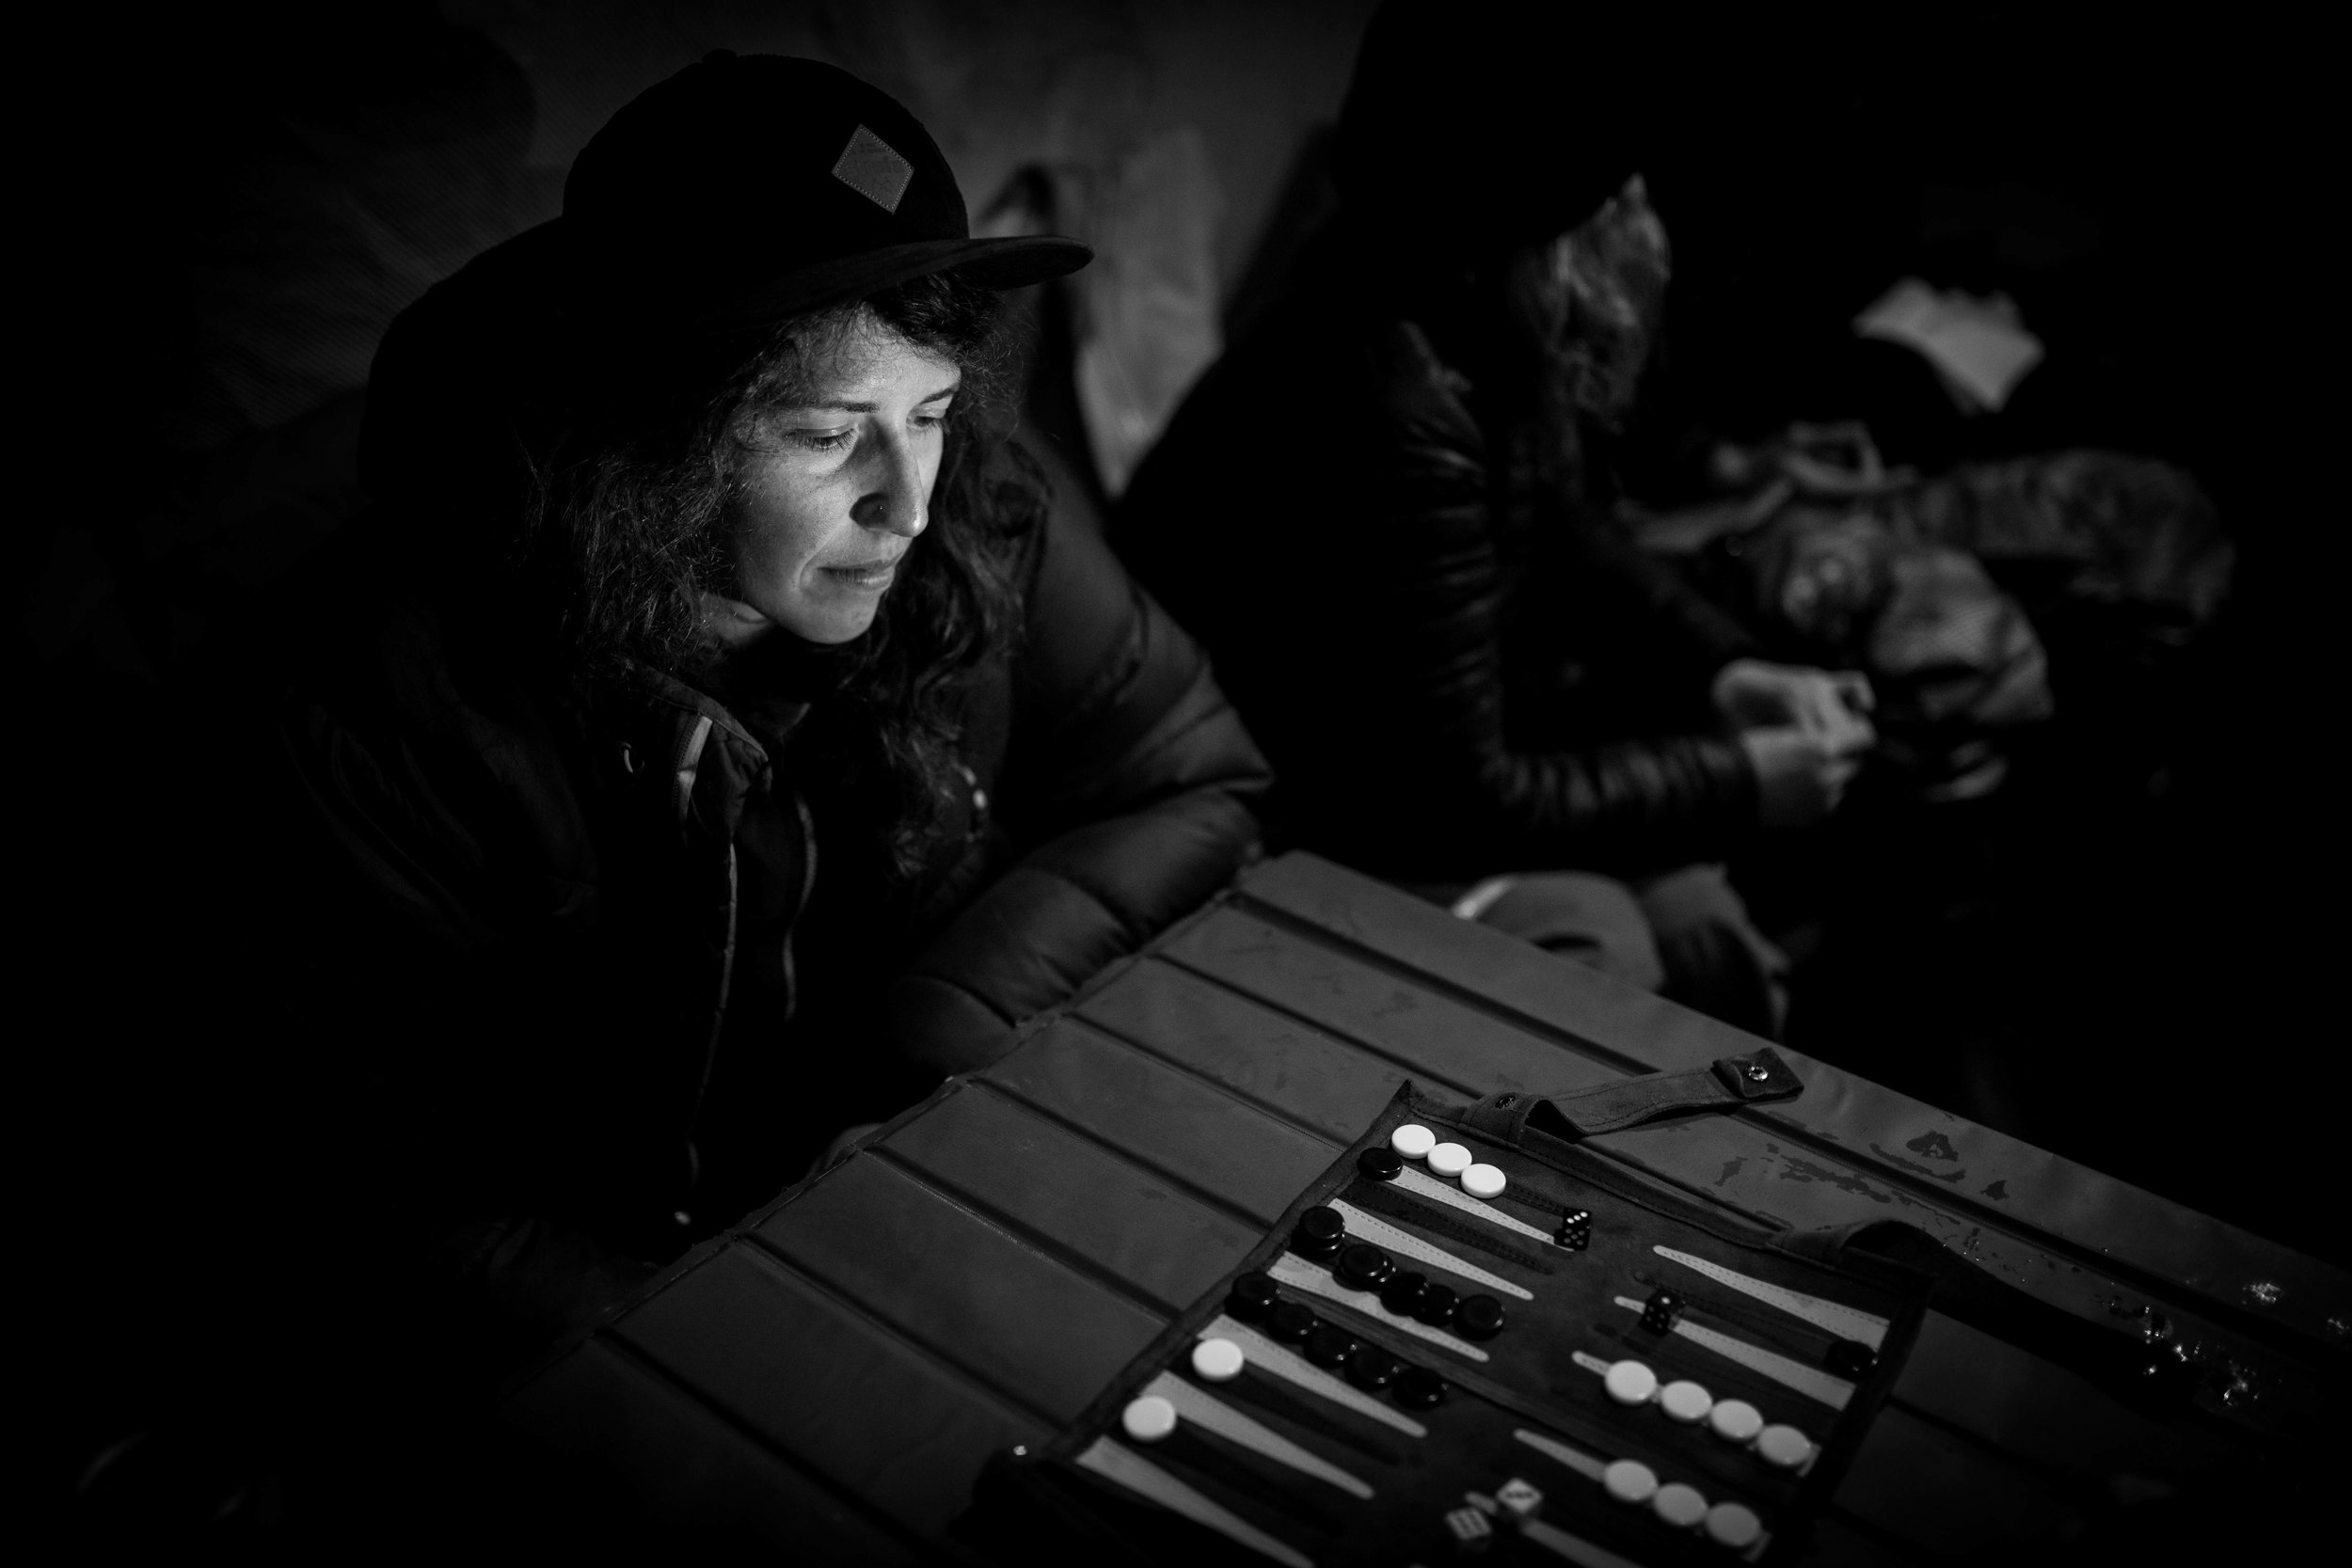 Nat Segal is the backgammon champion of the Chugach